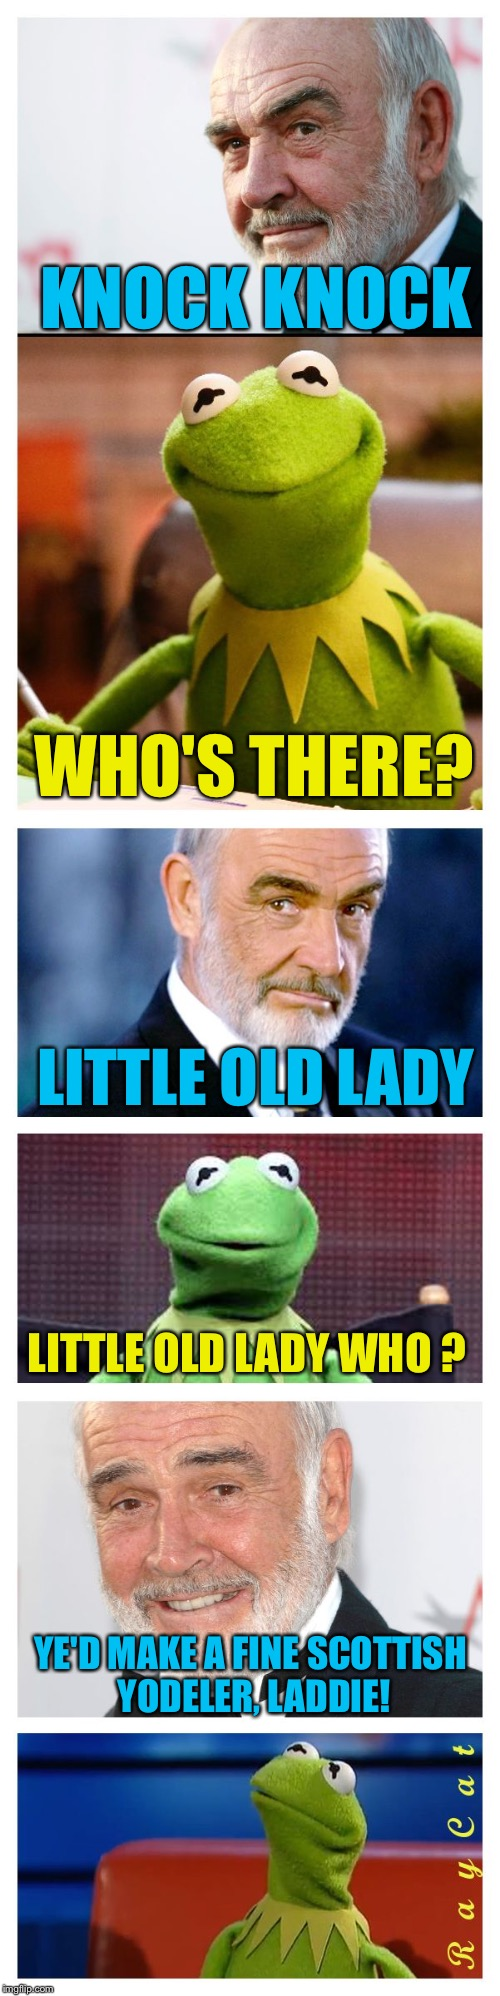 Sean and Kermit | KNOCK KNOCK WHO'S THERE? LITTLE OLD LADY LITTLE OLD LADY WHO ? YE'D MAKE A FINE SCOTTISH YODELER, LADDIE! | image tagged in sean and kermit,memes,knock knock,yodeling | made w/ Imgflip meme maker